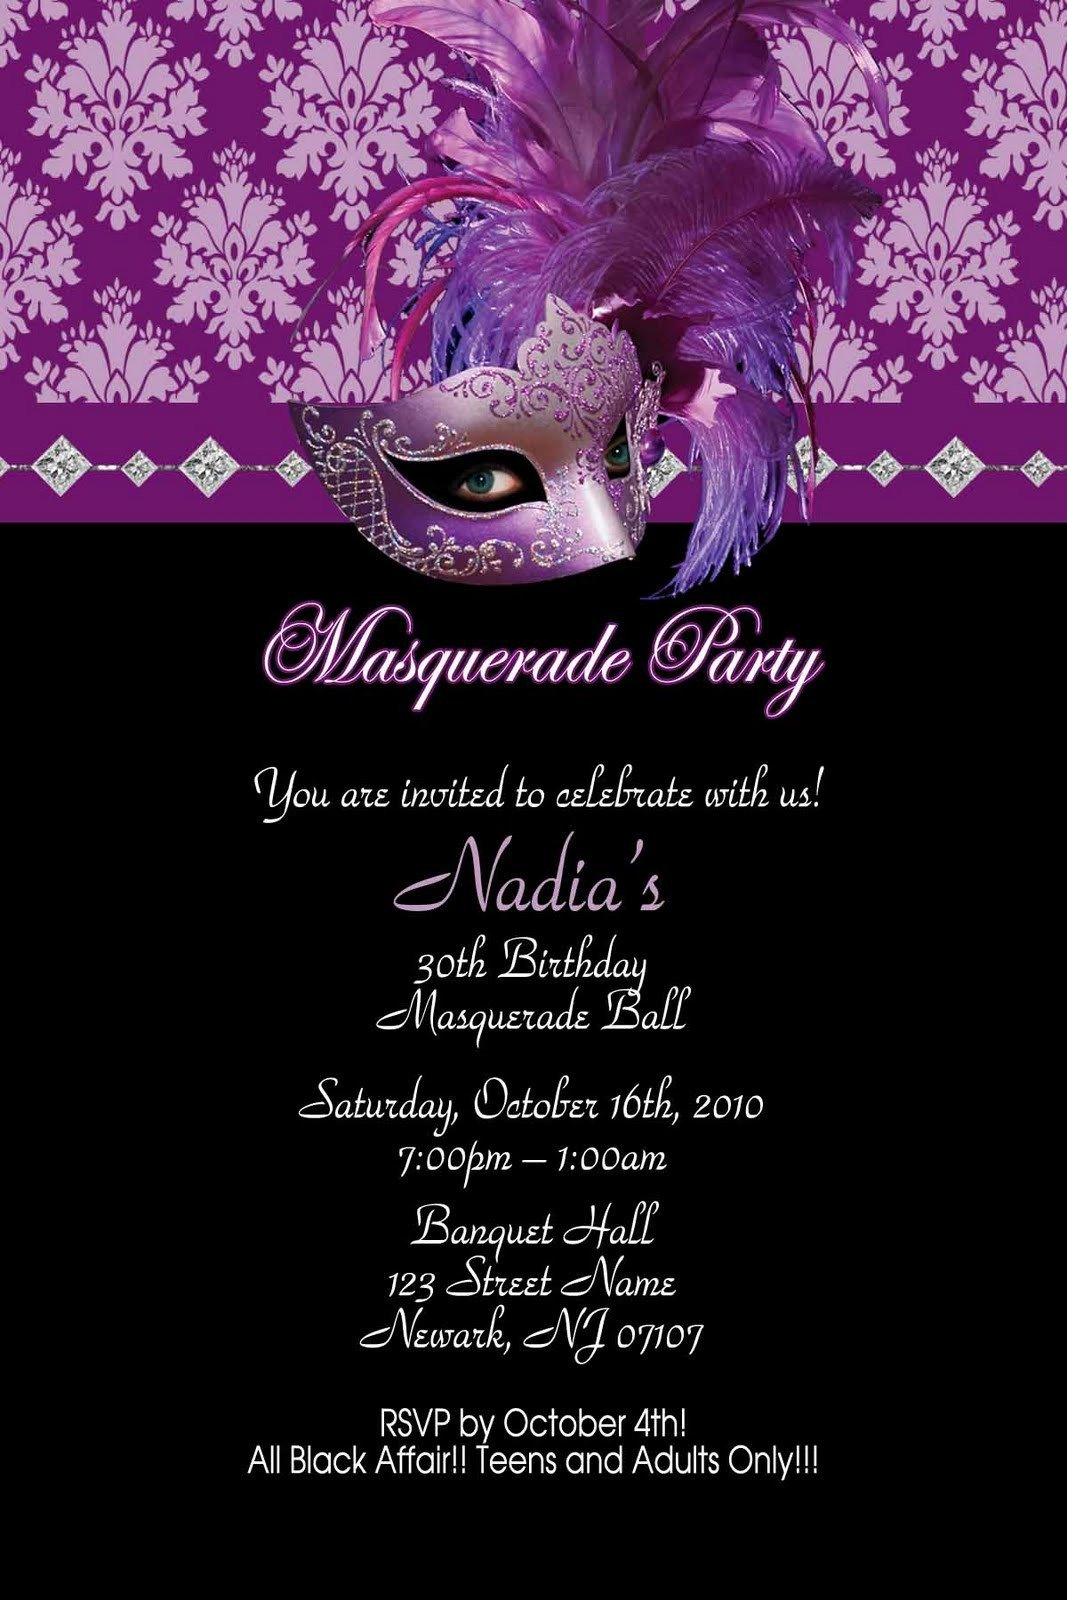 Masquerade Invitations Template Free Hollywood theme Quinceanera Quinceanera themes